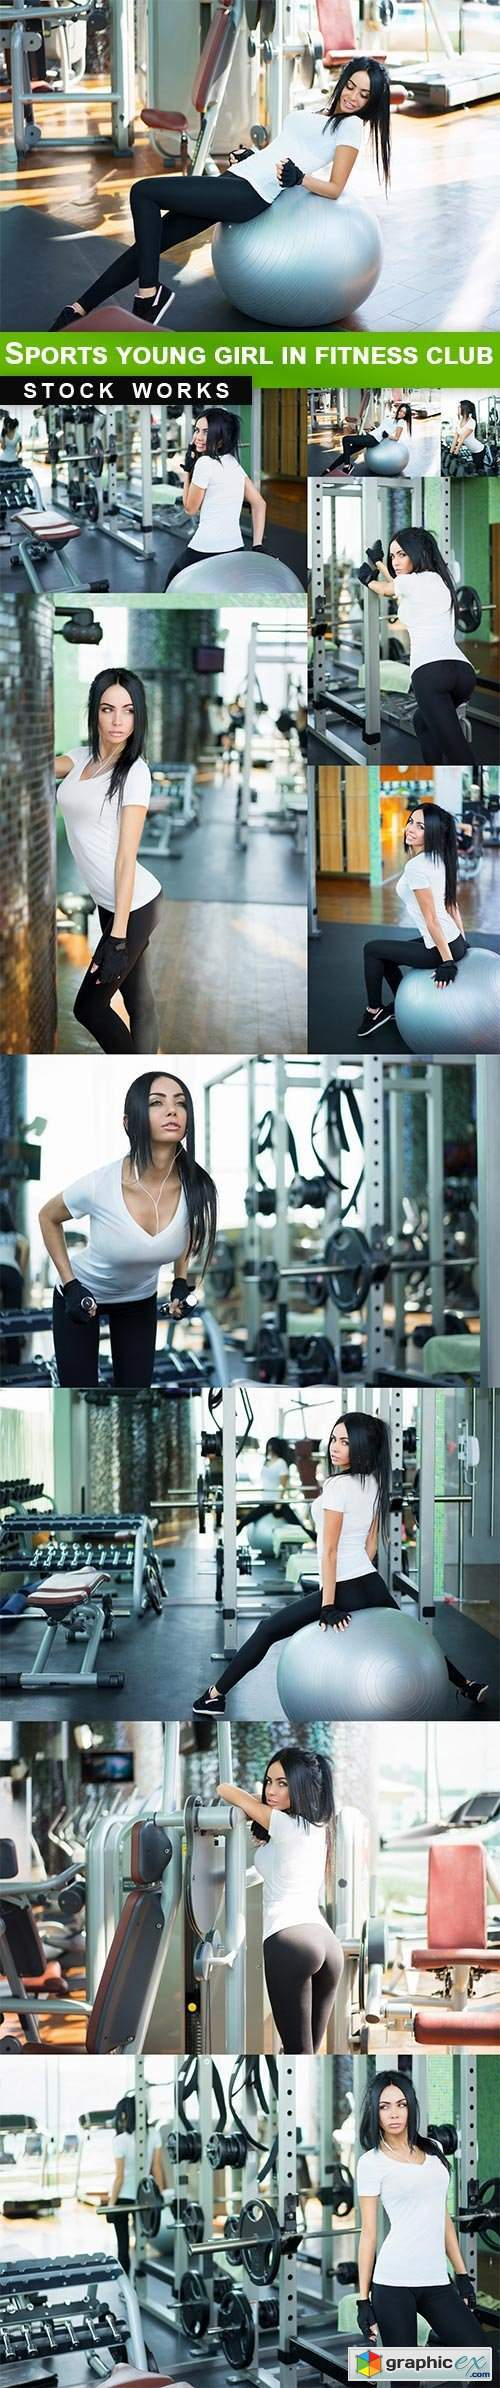 Sports young girl in fitness club - 10 UHQ JPEG